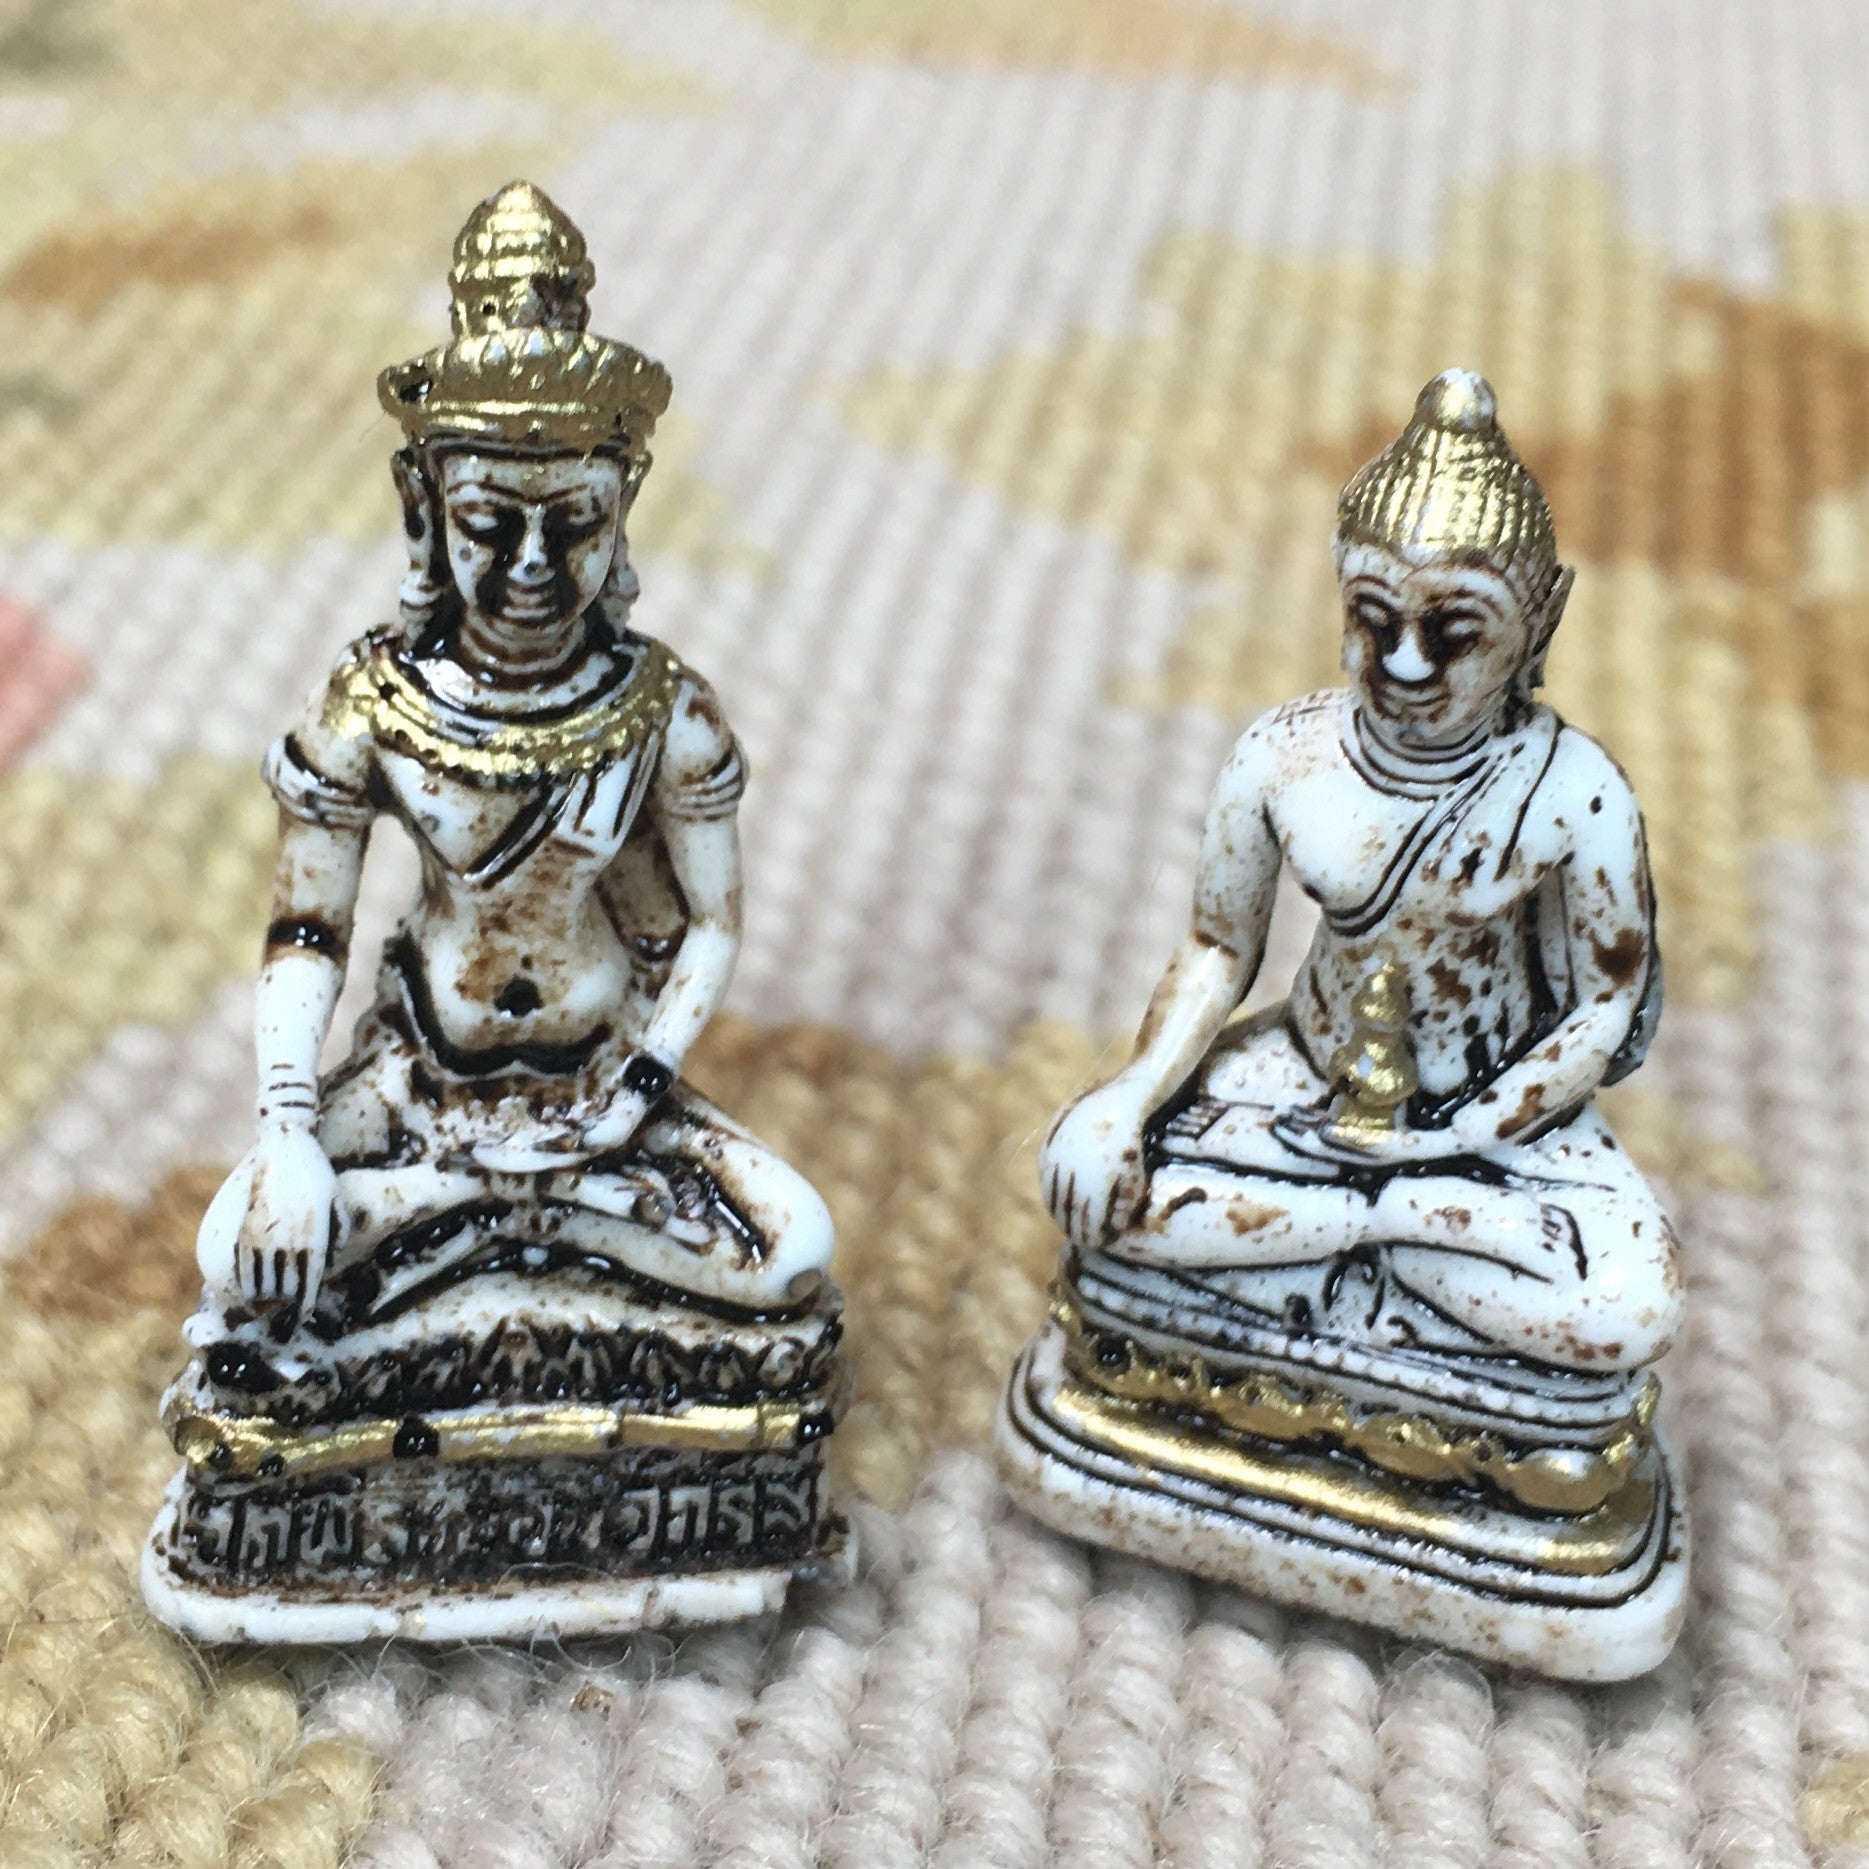 Buddha Budda Buddha Statue Set of 2- 1:12 Dollhouse Miniature